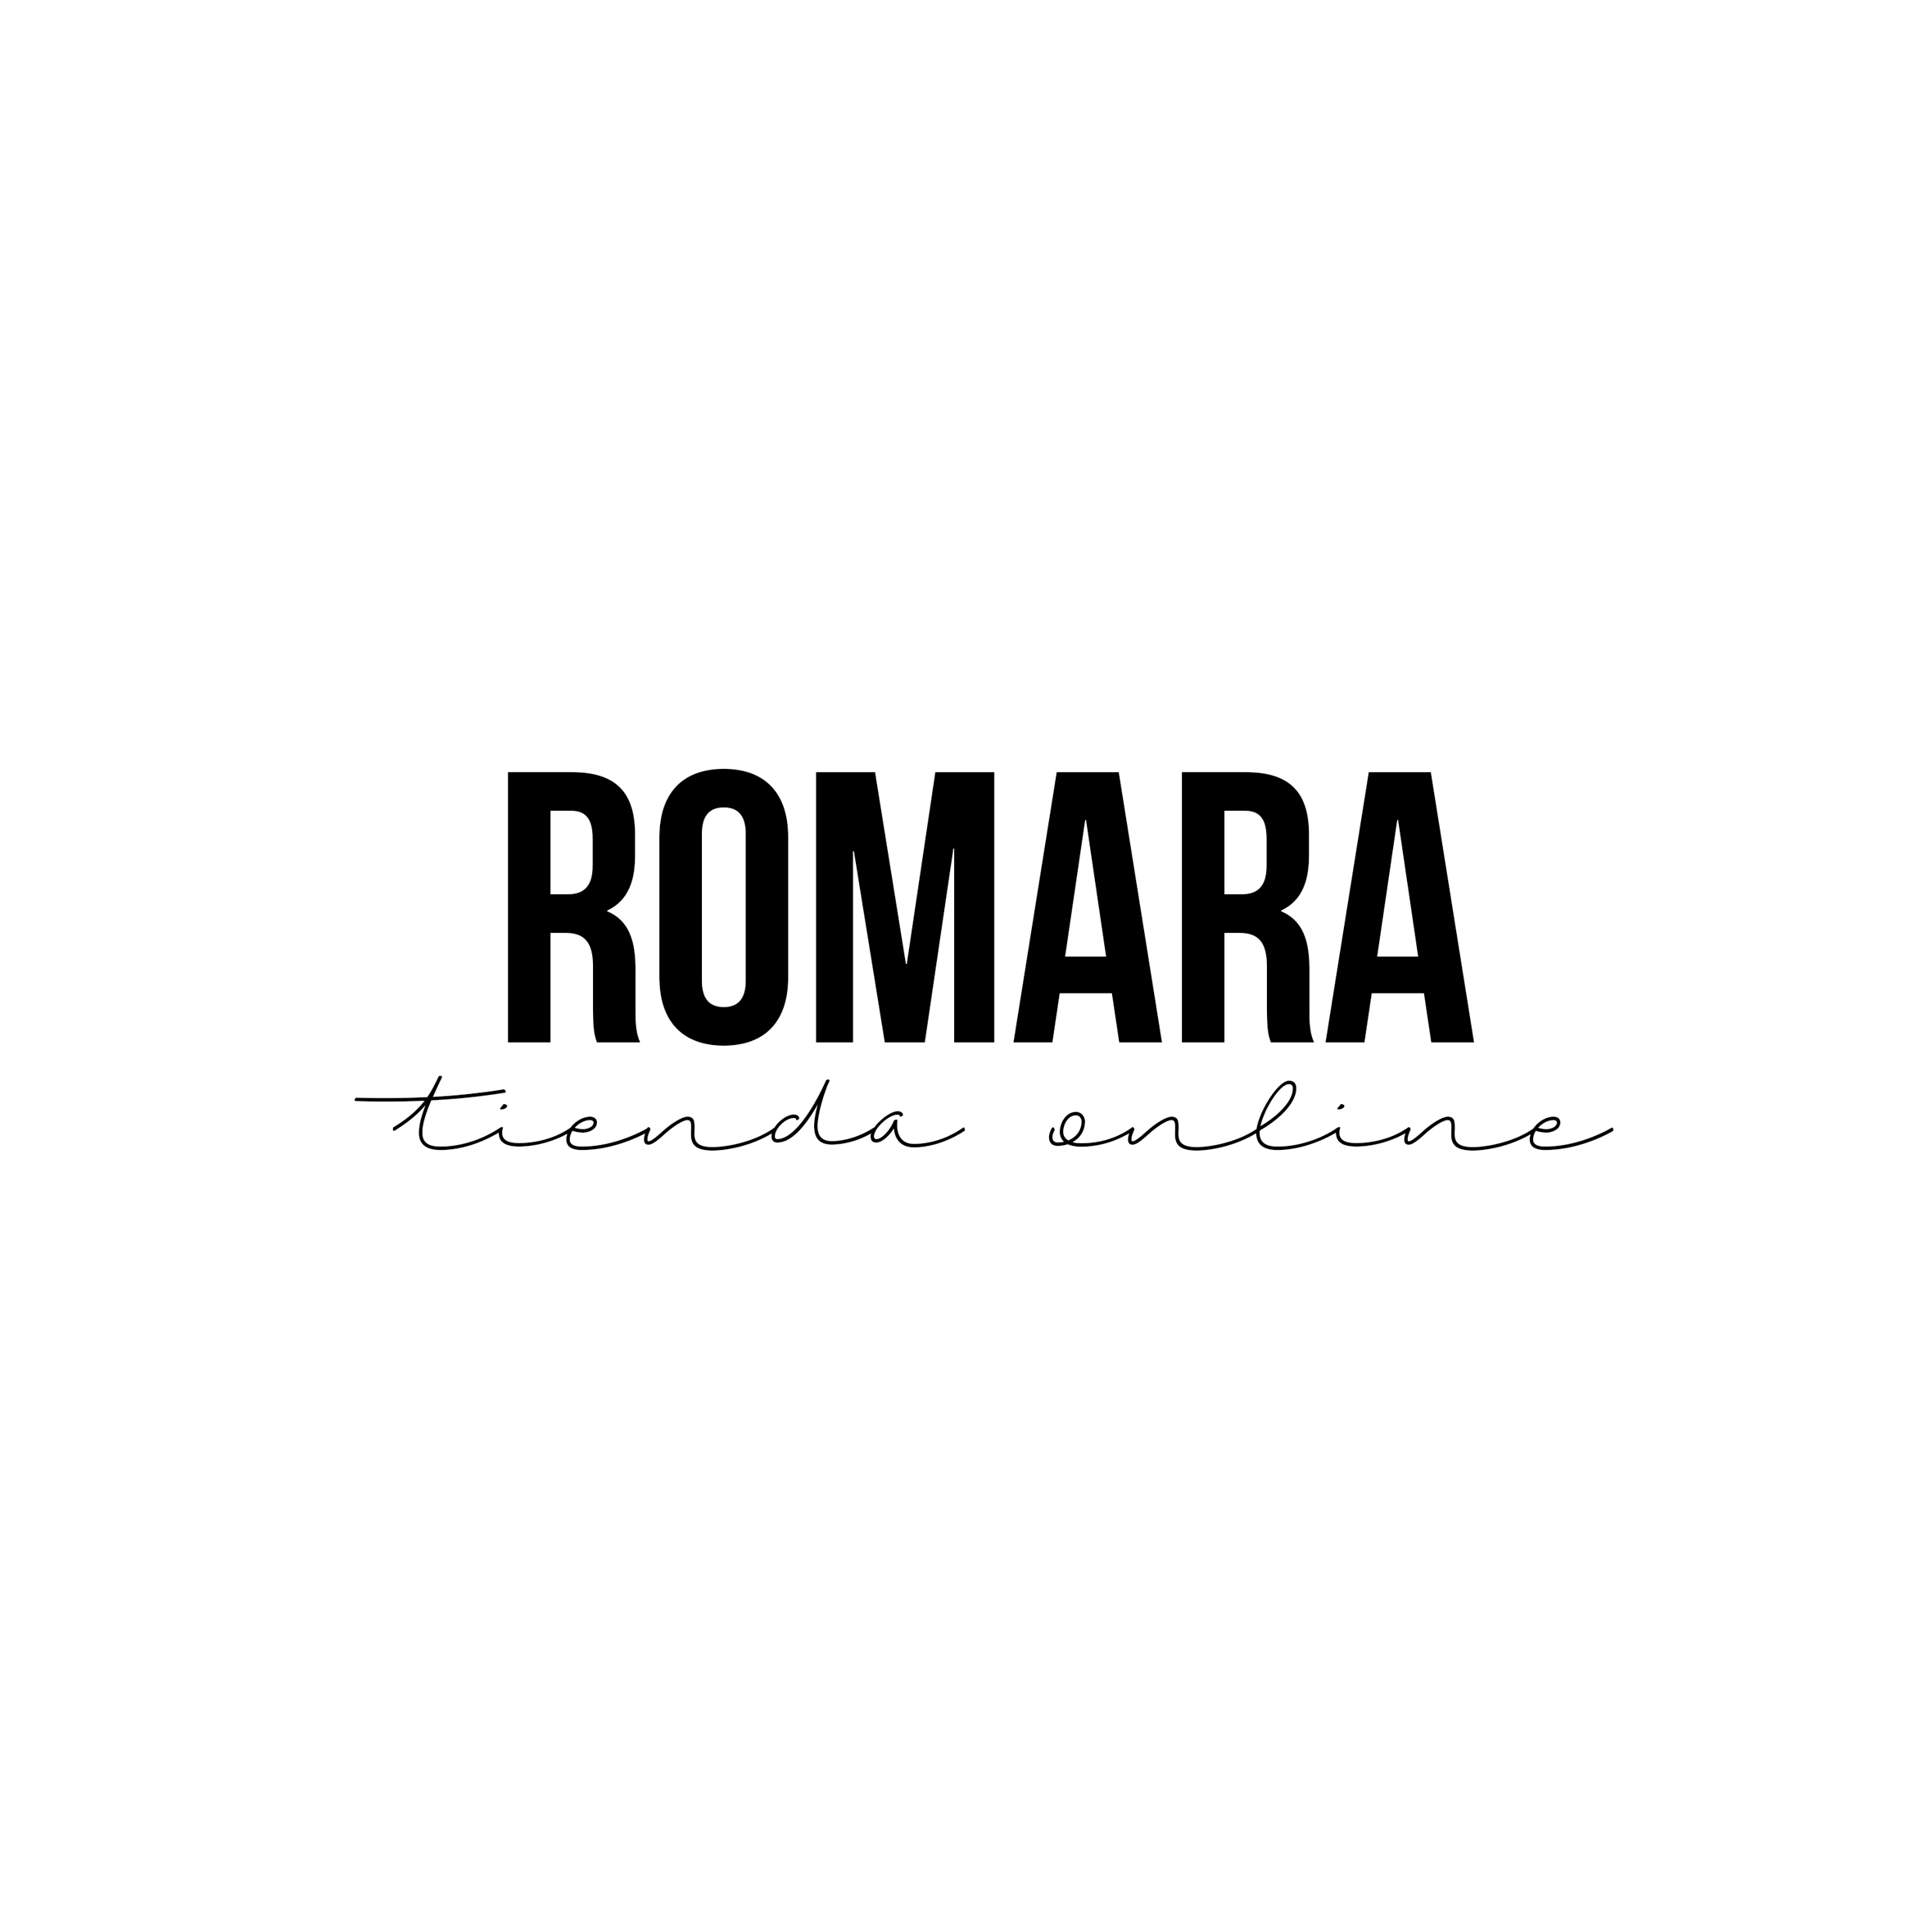 LOGO-ROMARA-BOUTIQUE